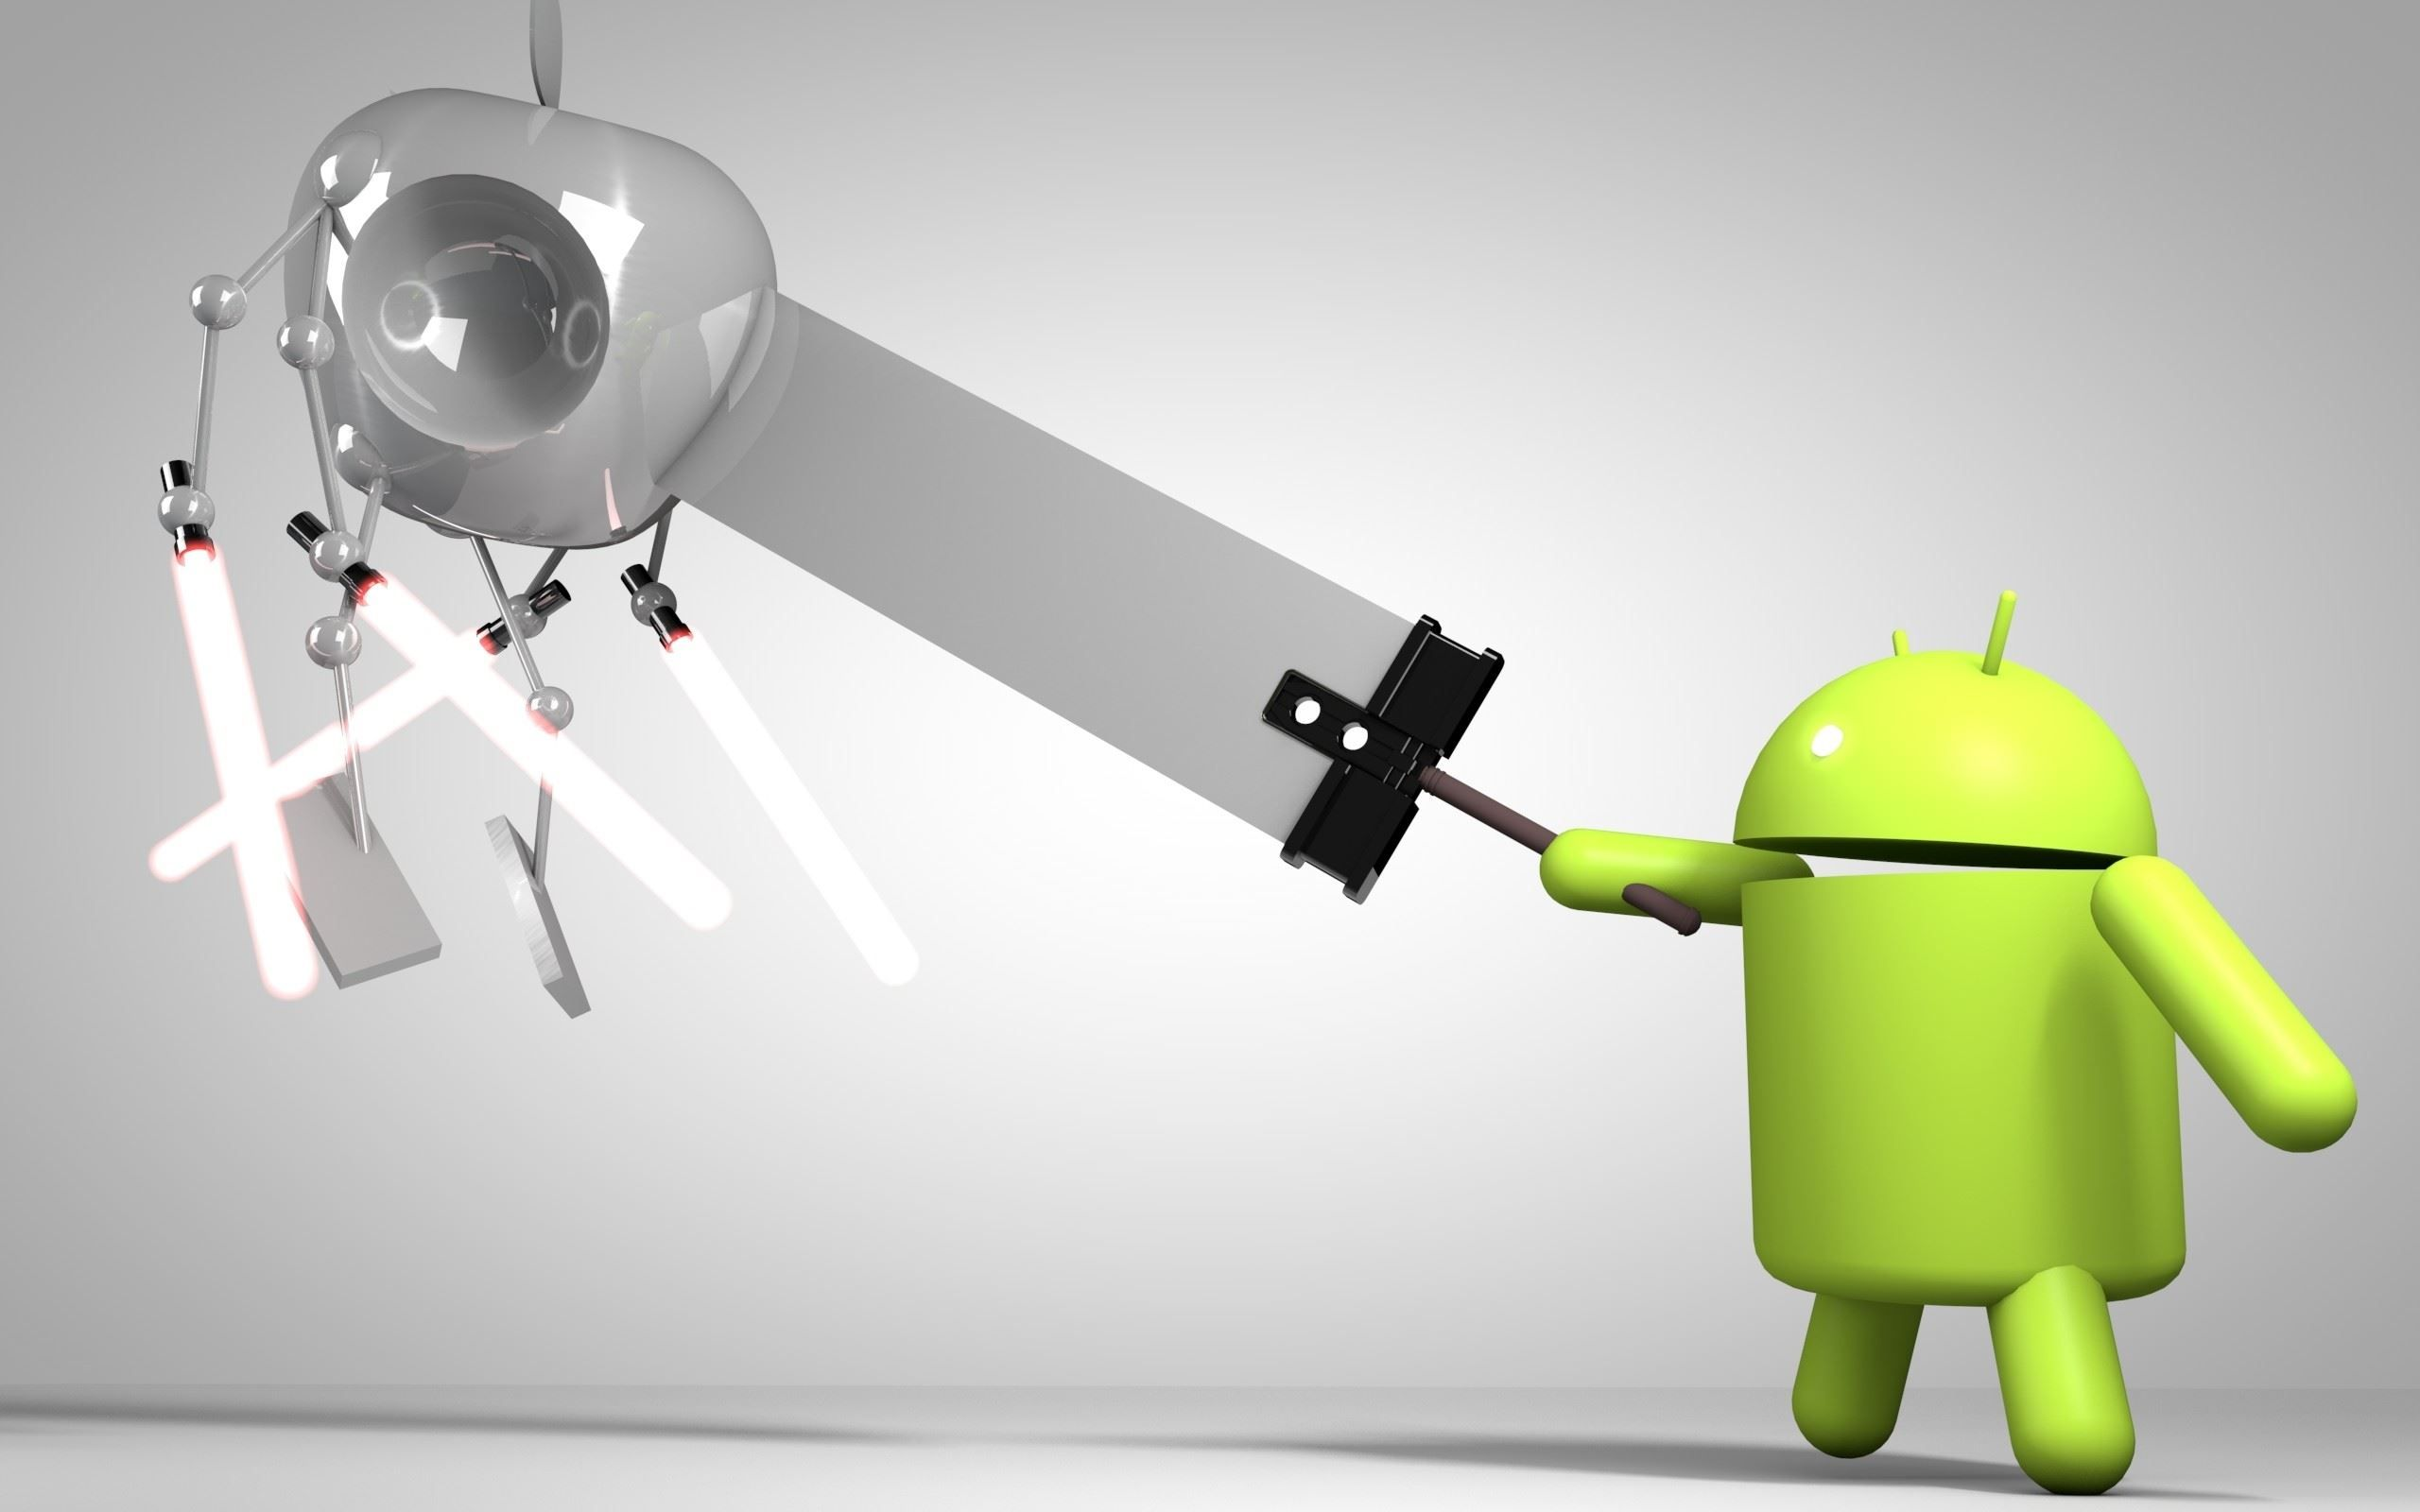 Awesome Android Vs Apple Wallpaper Free Download Uncategorized